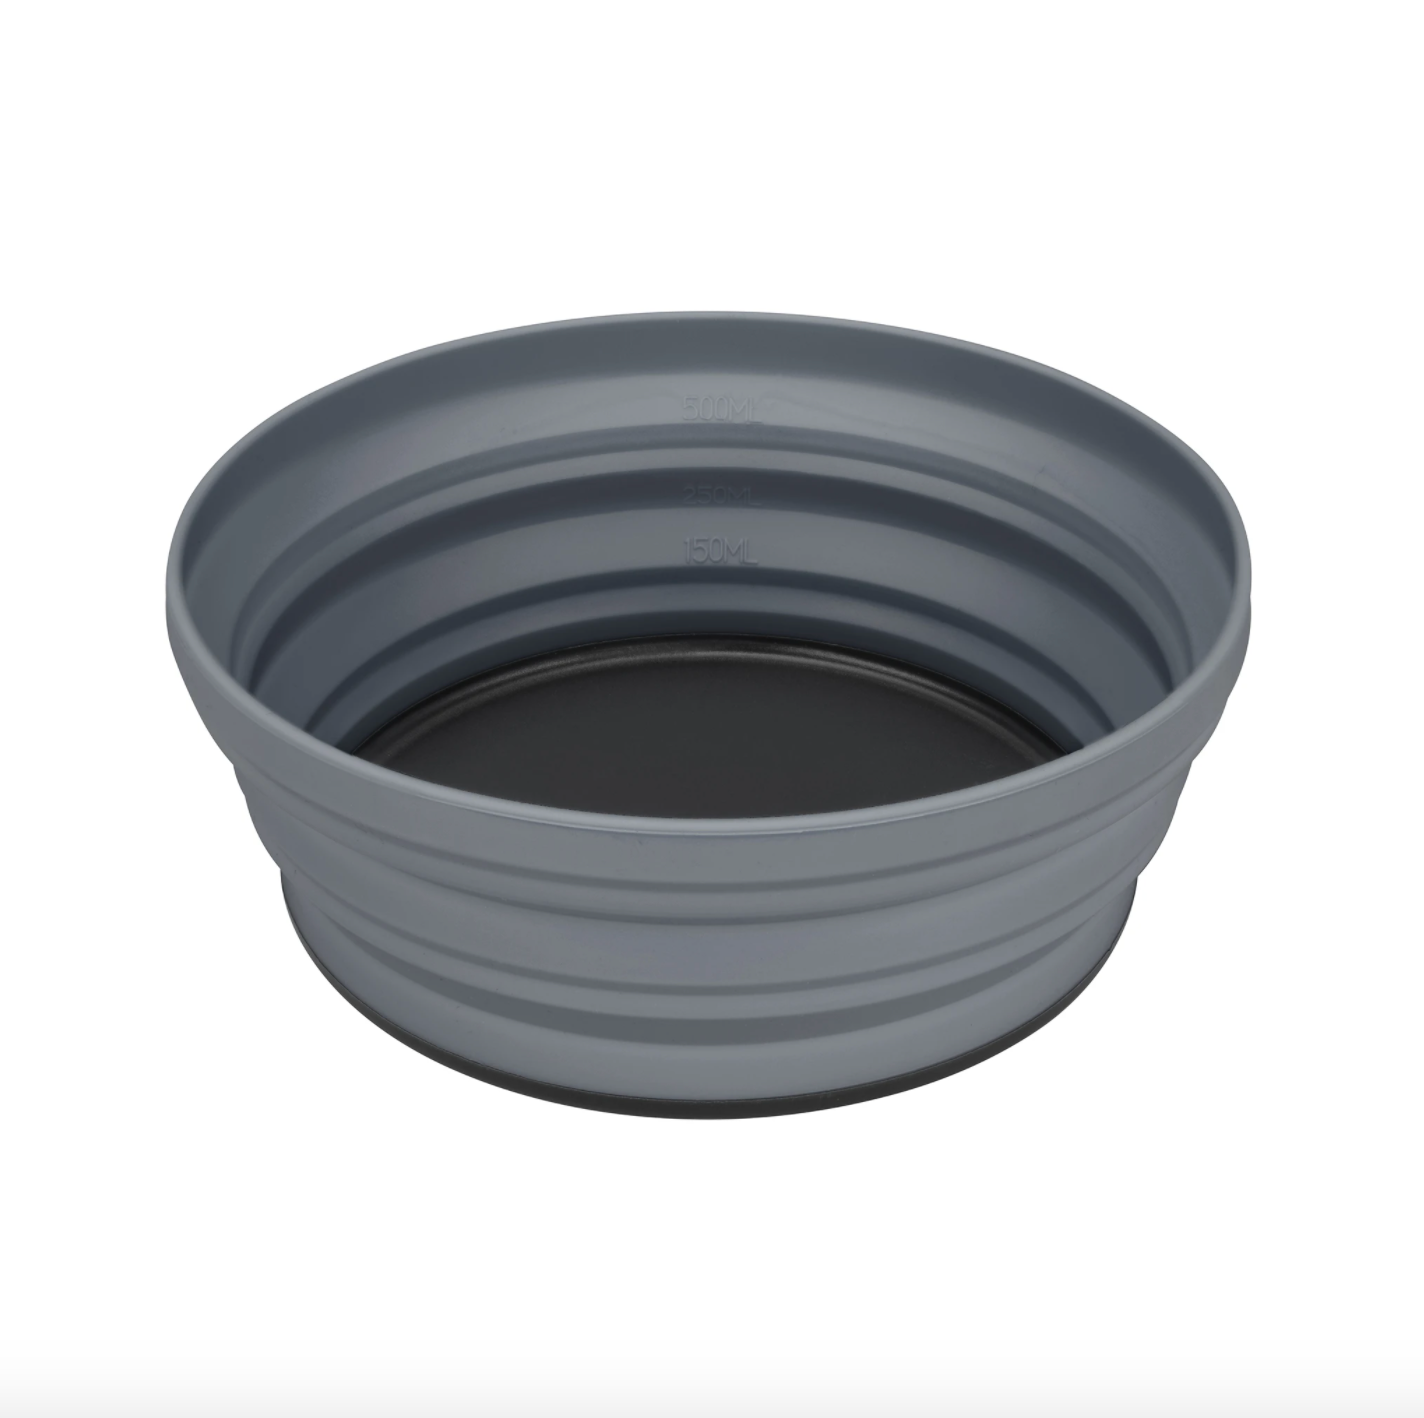 sea to summit x-bowl in grey